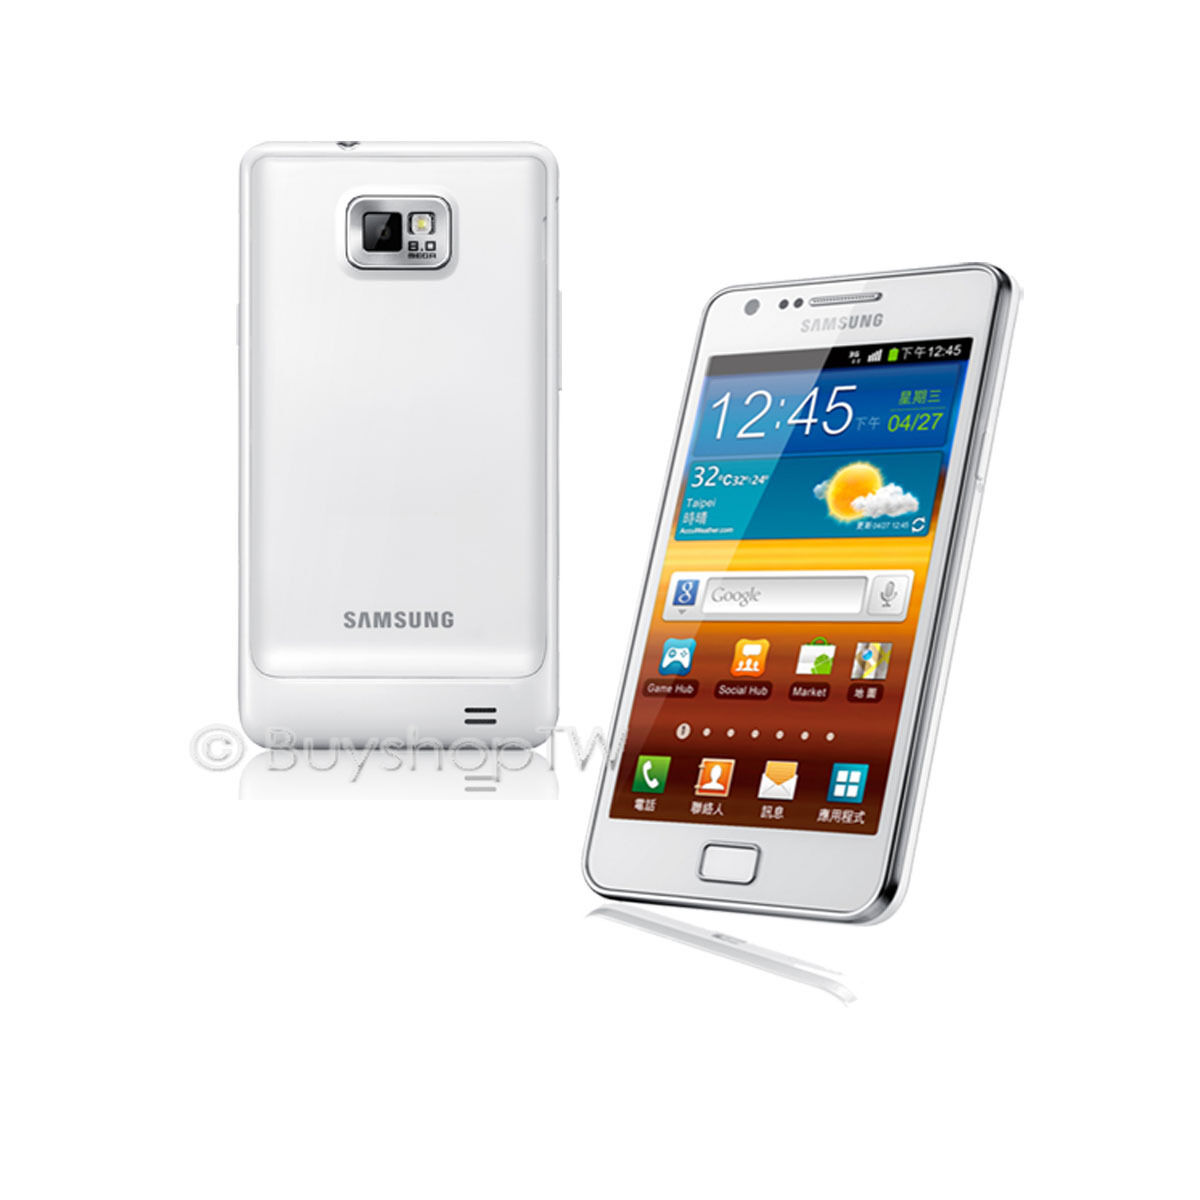 New Samsung Galaxy s II S2 GT i9100 16GB Unlocked Android Smartphone White 751567459731